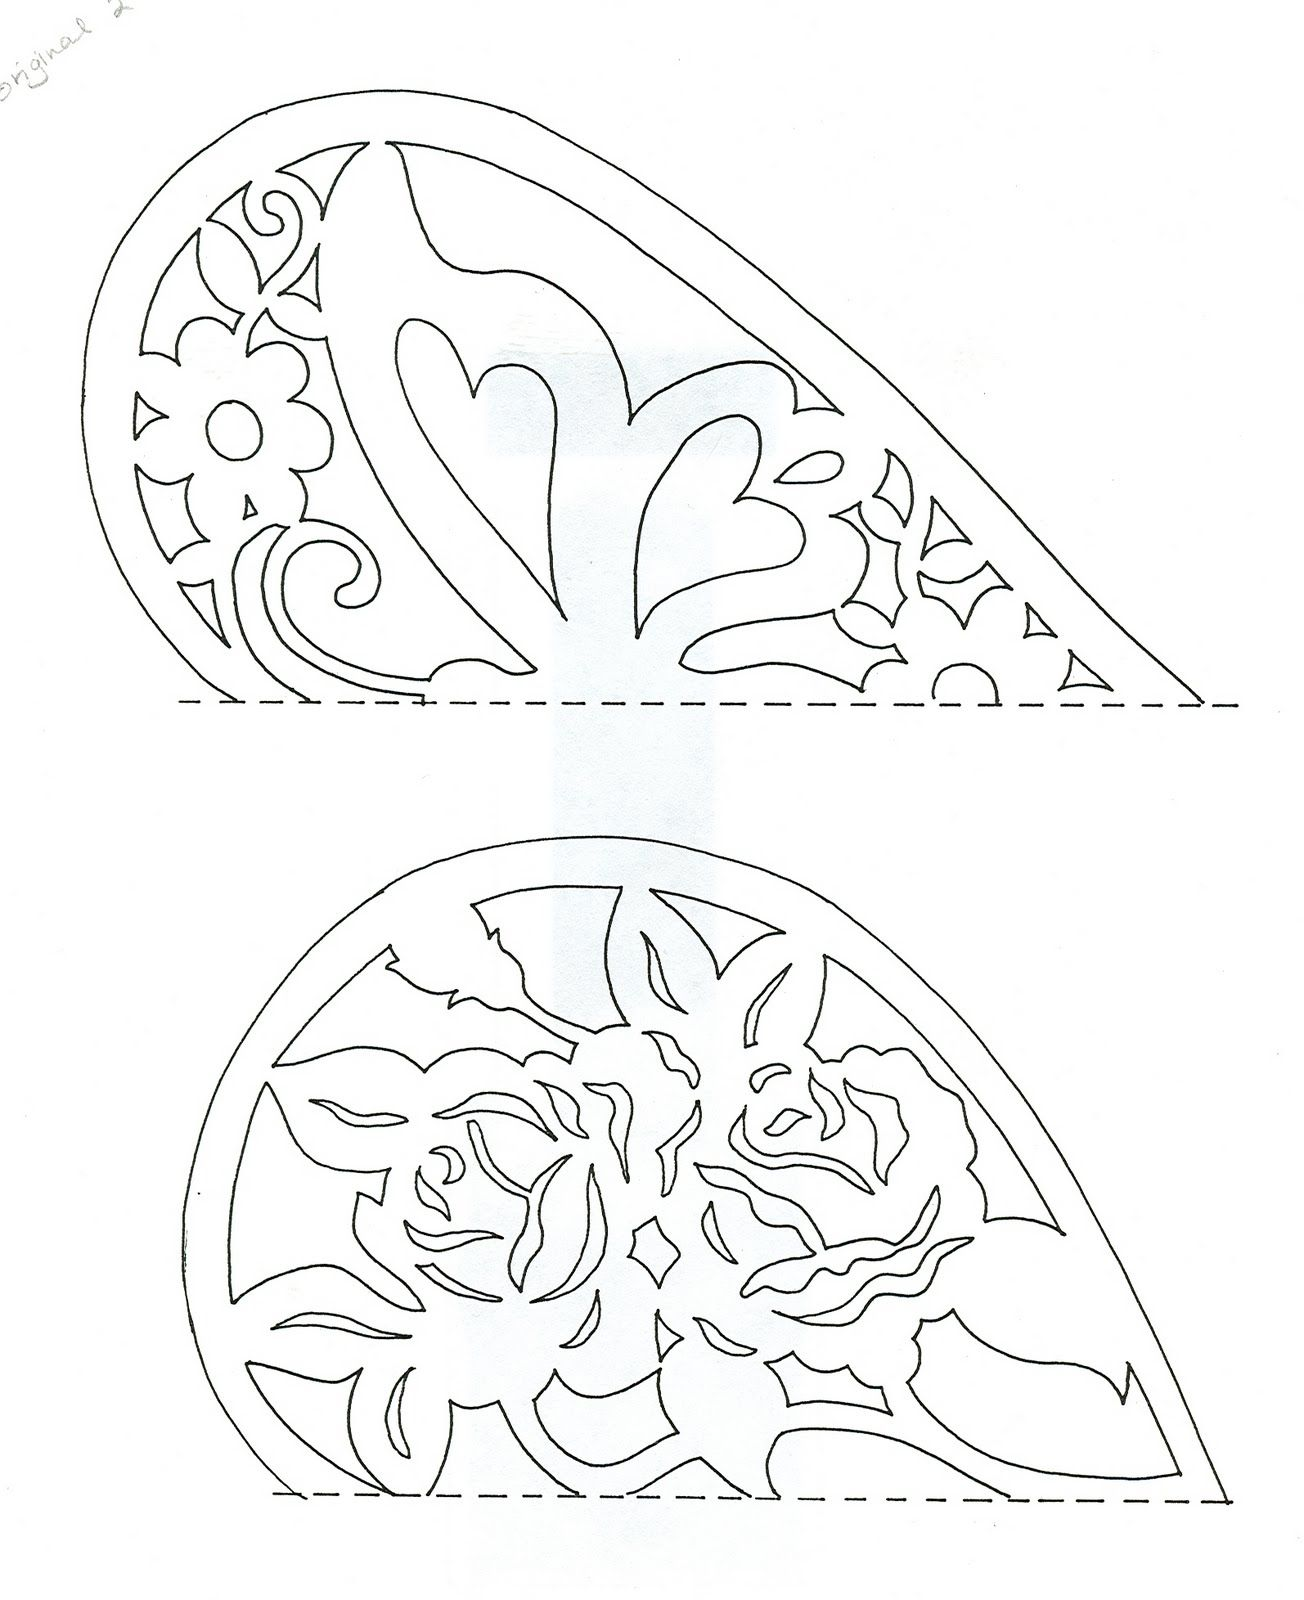 image regarding Papel Picado Templates Printable referred to as Iris Folding Routines No cost Printables the supreme one particular is made up of the